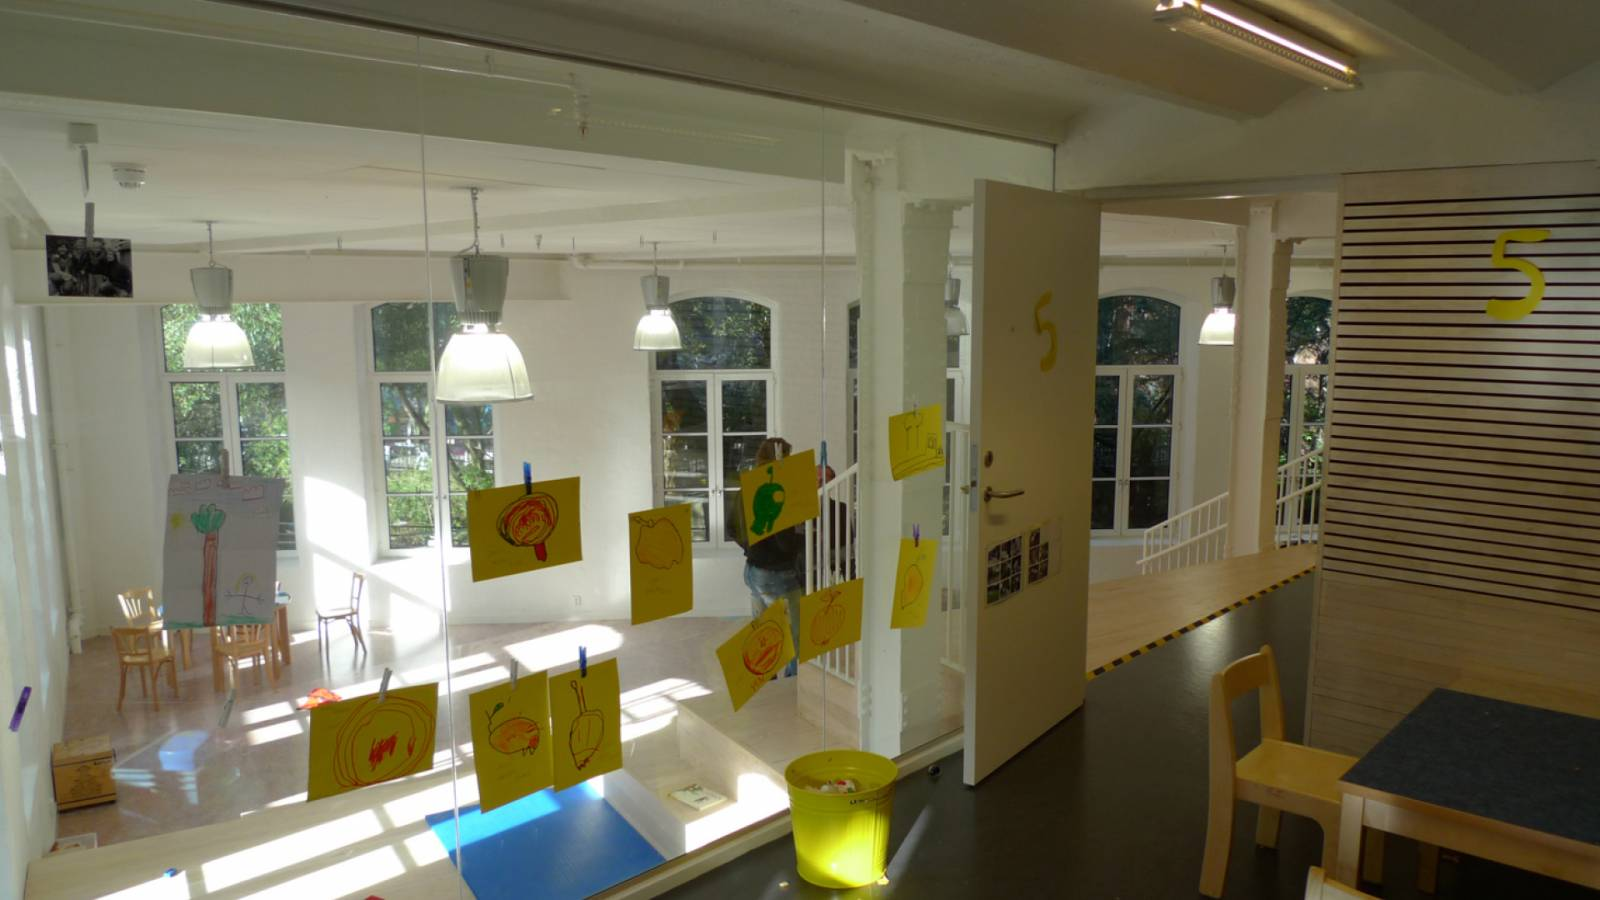 FROM BASE ROOM - Ny York Cultural kindergarten - SPOL Architects